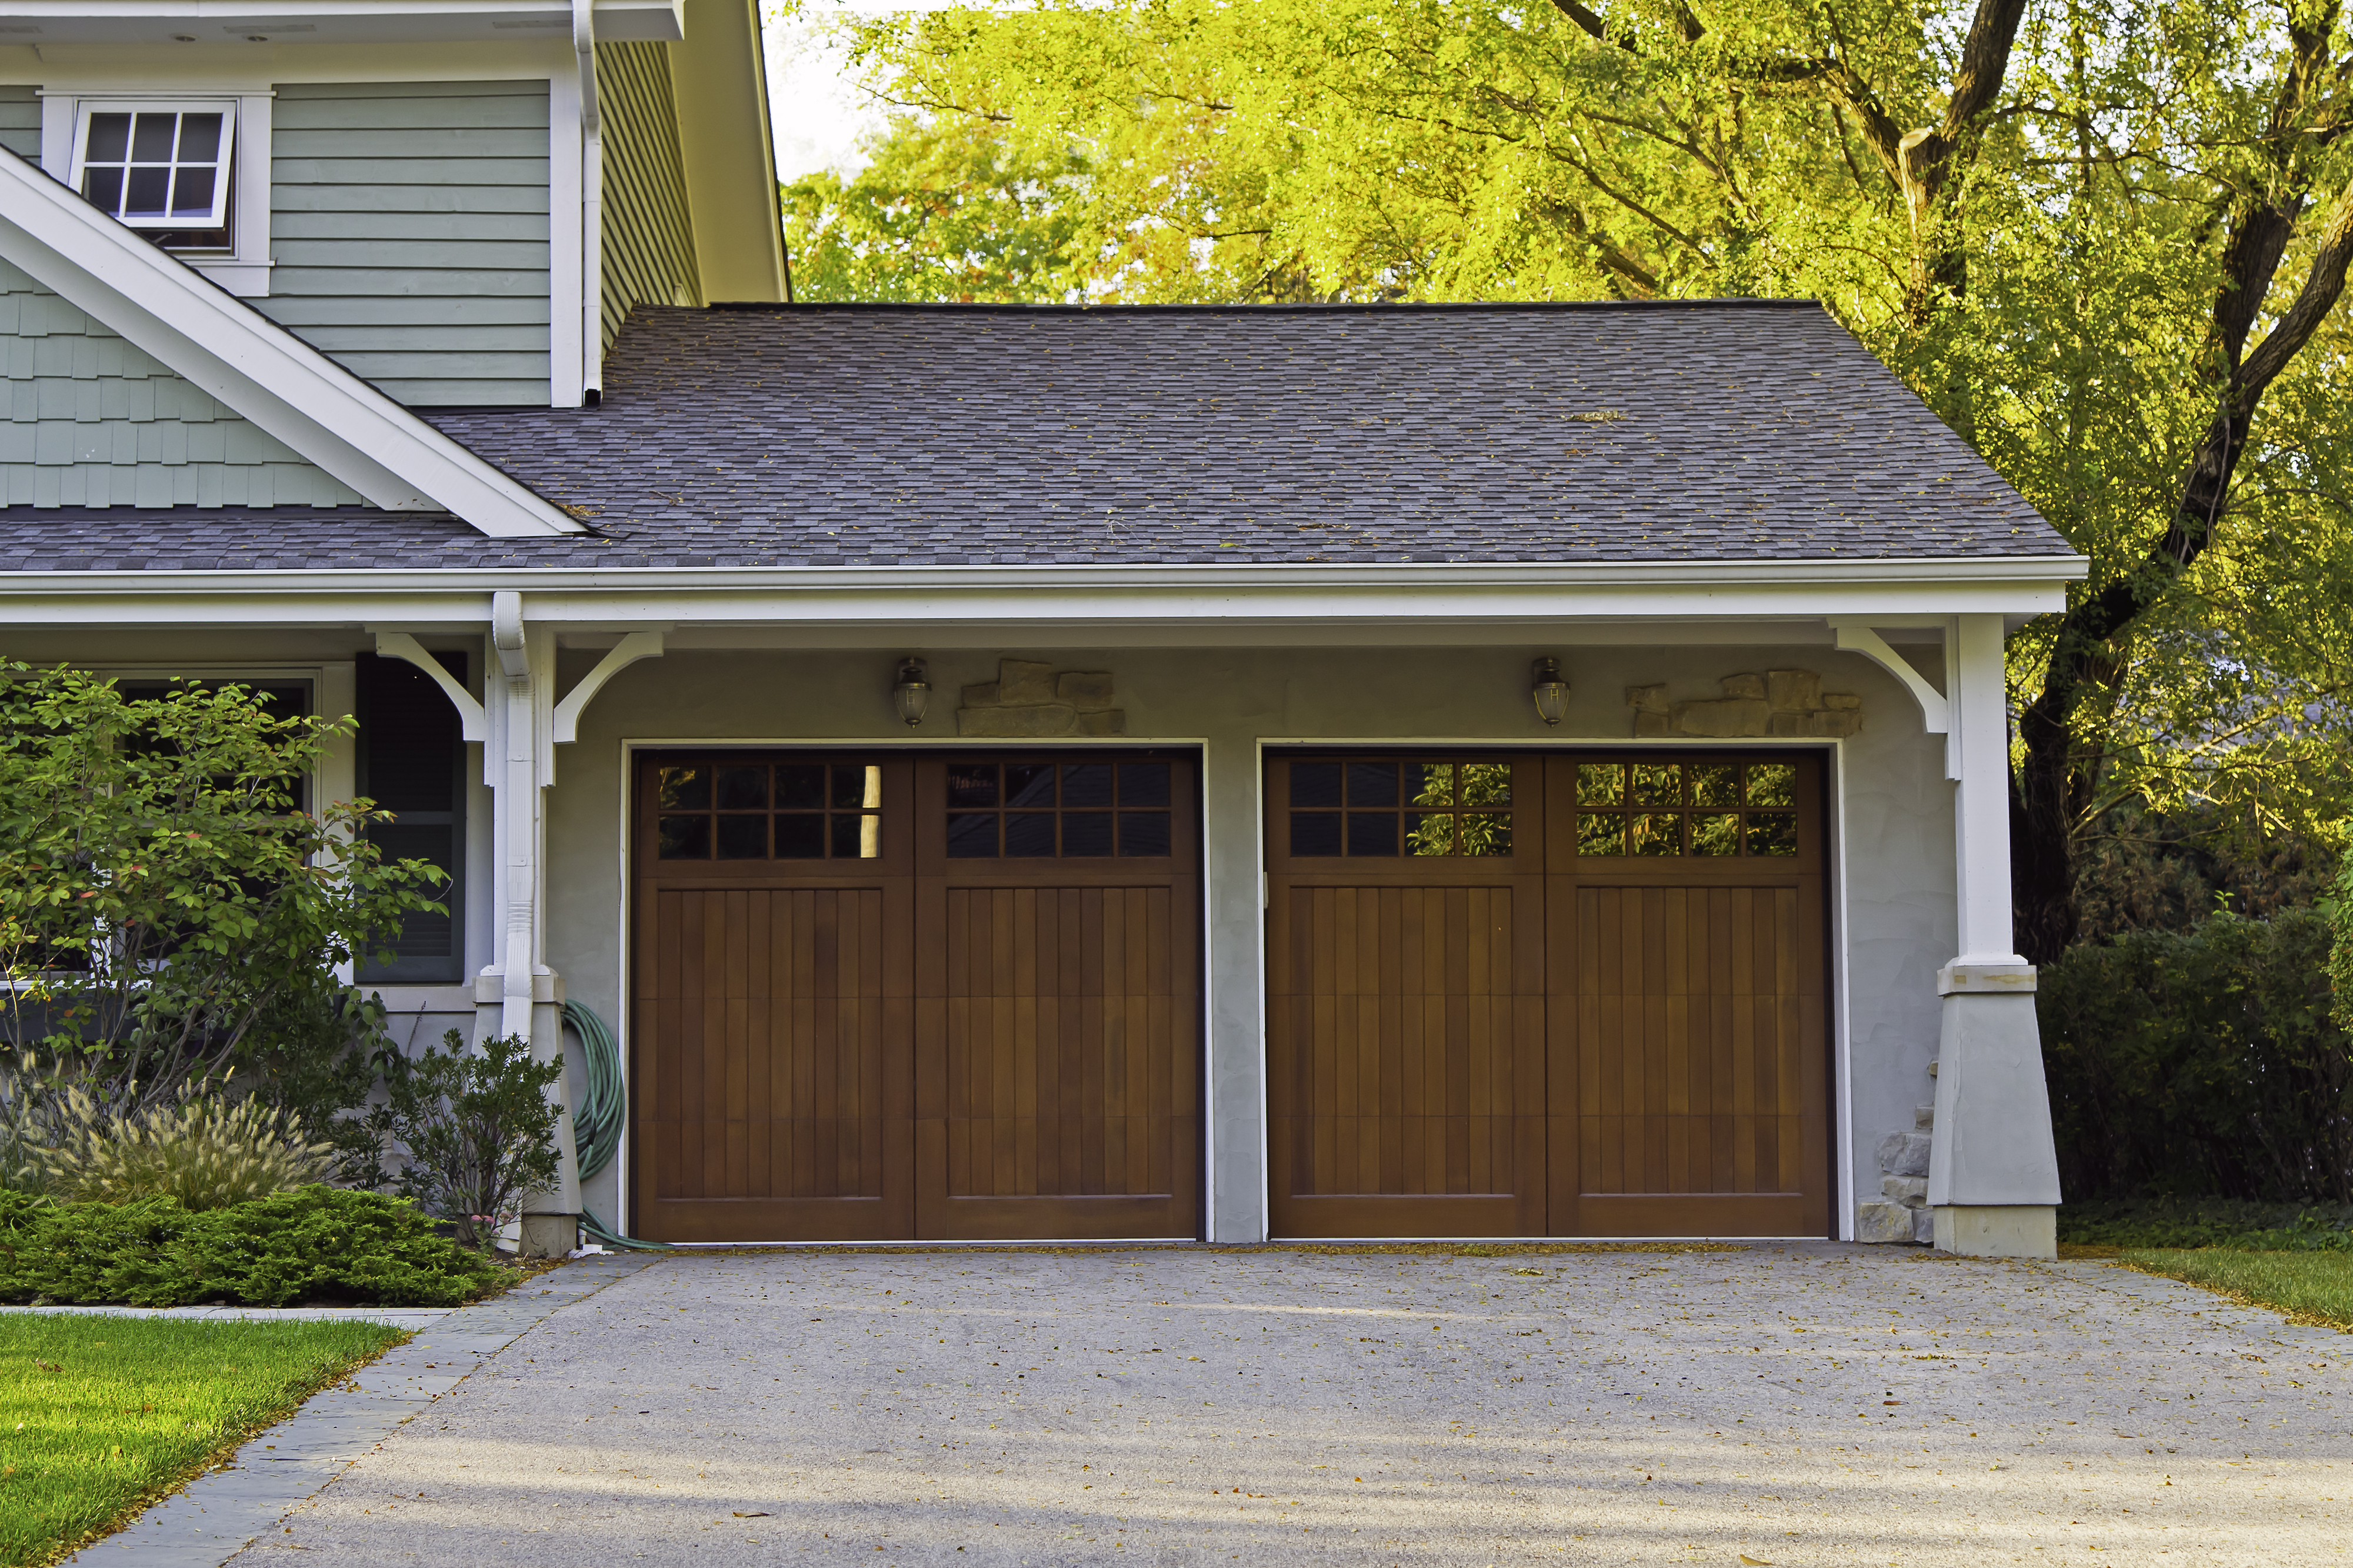 How To Fix A Garage Door Opener Remote That Has Stopped Working